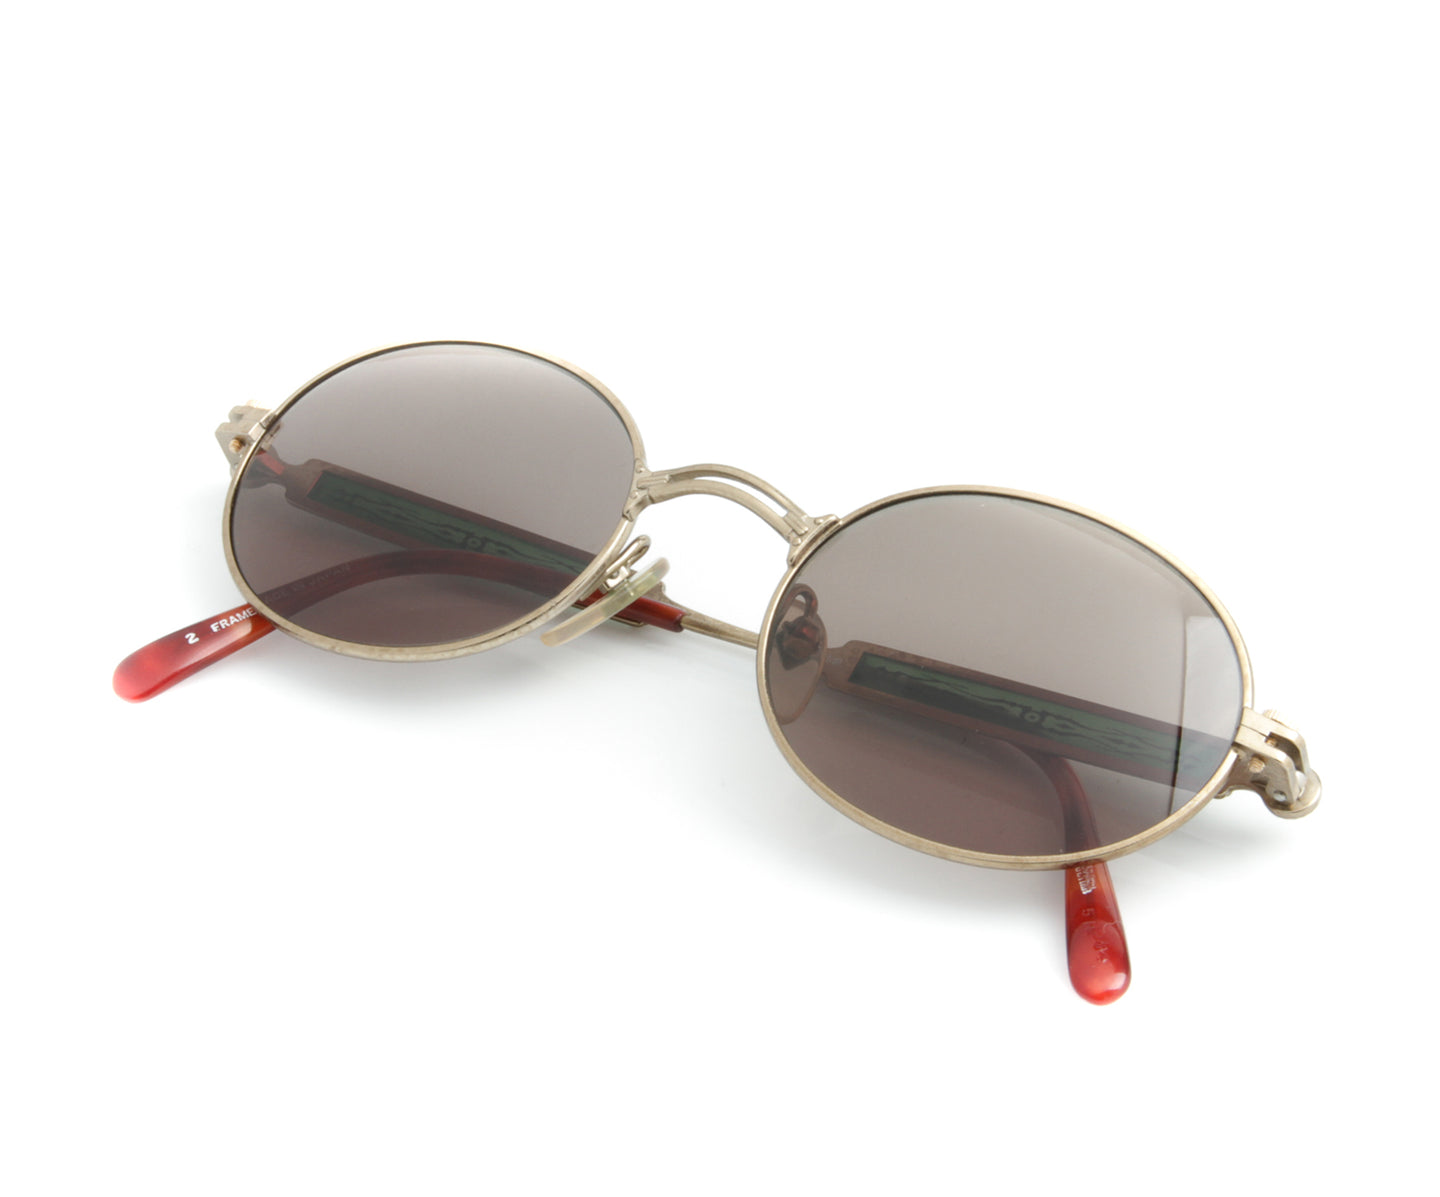 Jean Paul Gaultier 56-4170 2 Thumb, Jean Paul Gaultier , glasses frames, eyeglasses online, eyeglass frames, mens glasses, womens glasses, buy glasses online, designer eyeglasses, vintage sunglasses, retro sunglasses, vintage glasses, sunglass, eyeglass, glasses, lens, vintage frames company, vf